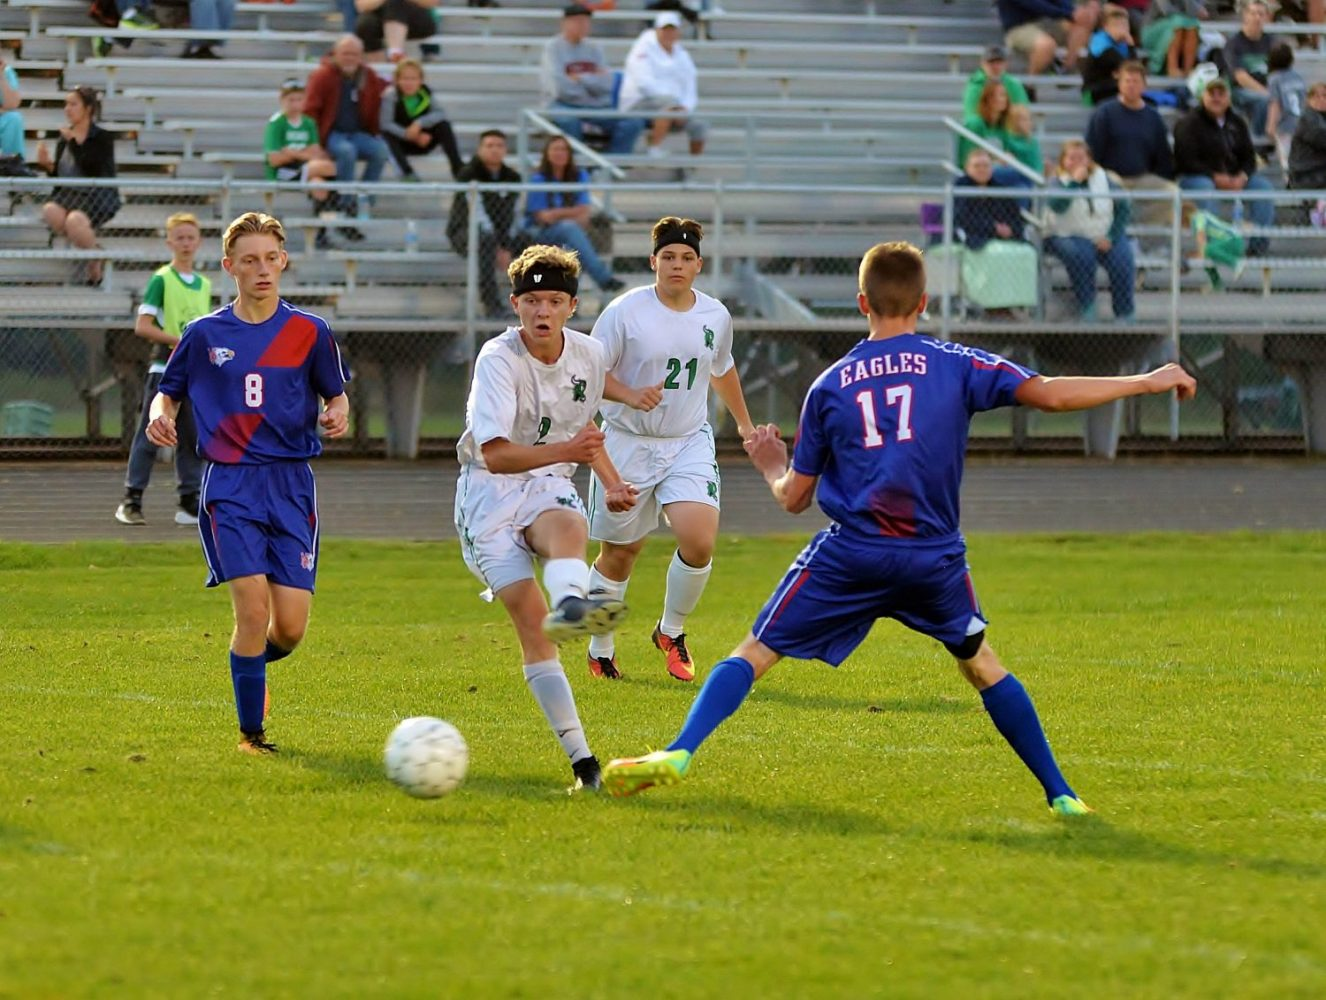 At center, the Hodags' Matthew Von Oepen (2) kicks the ball between Northland Pines players in Tuesday's game at Mike Webster Stadium.